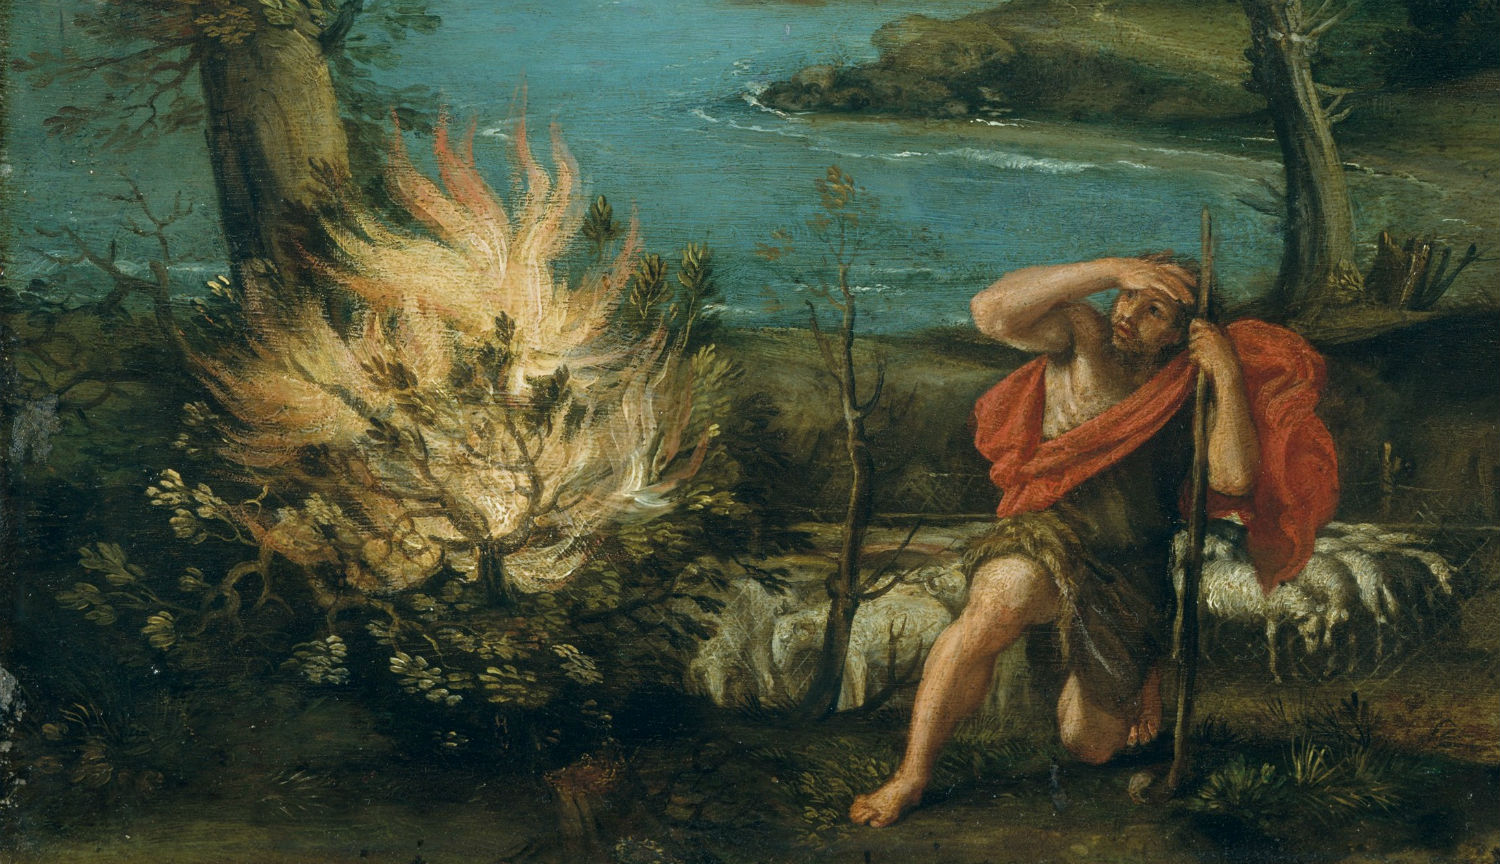 From Landscape with Moses and the Burning Bush by Domenichino, 1616. Metropolitan Museum of Art.